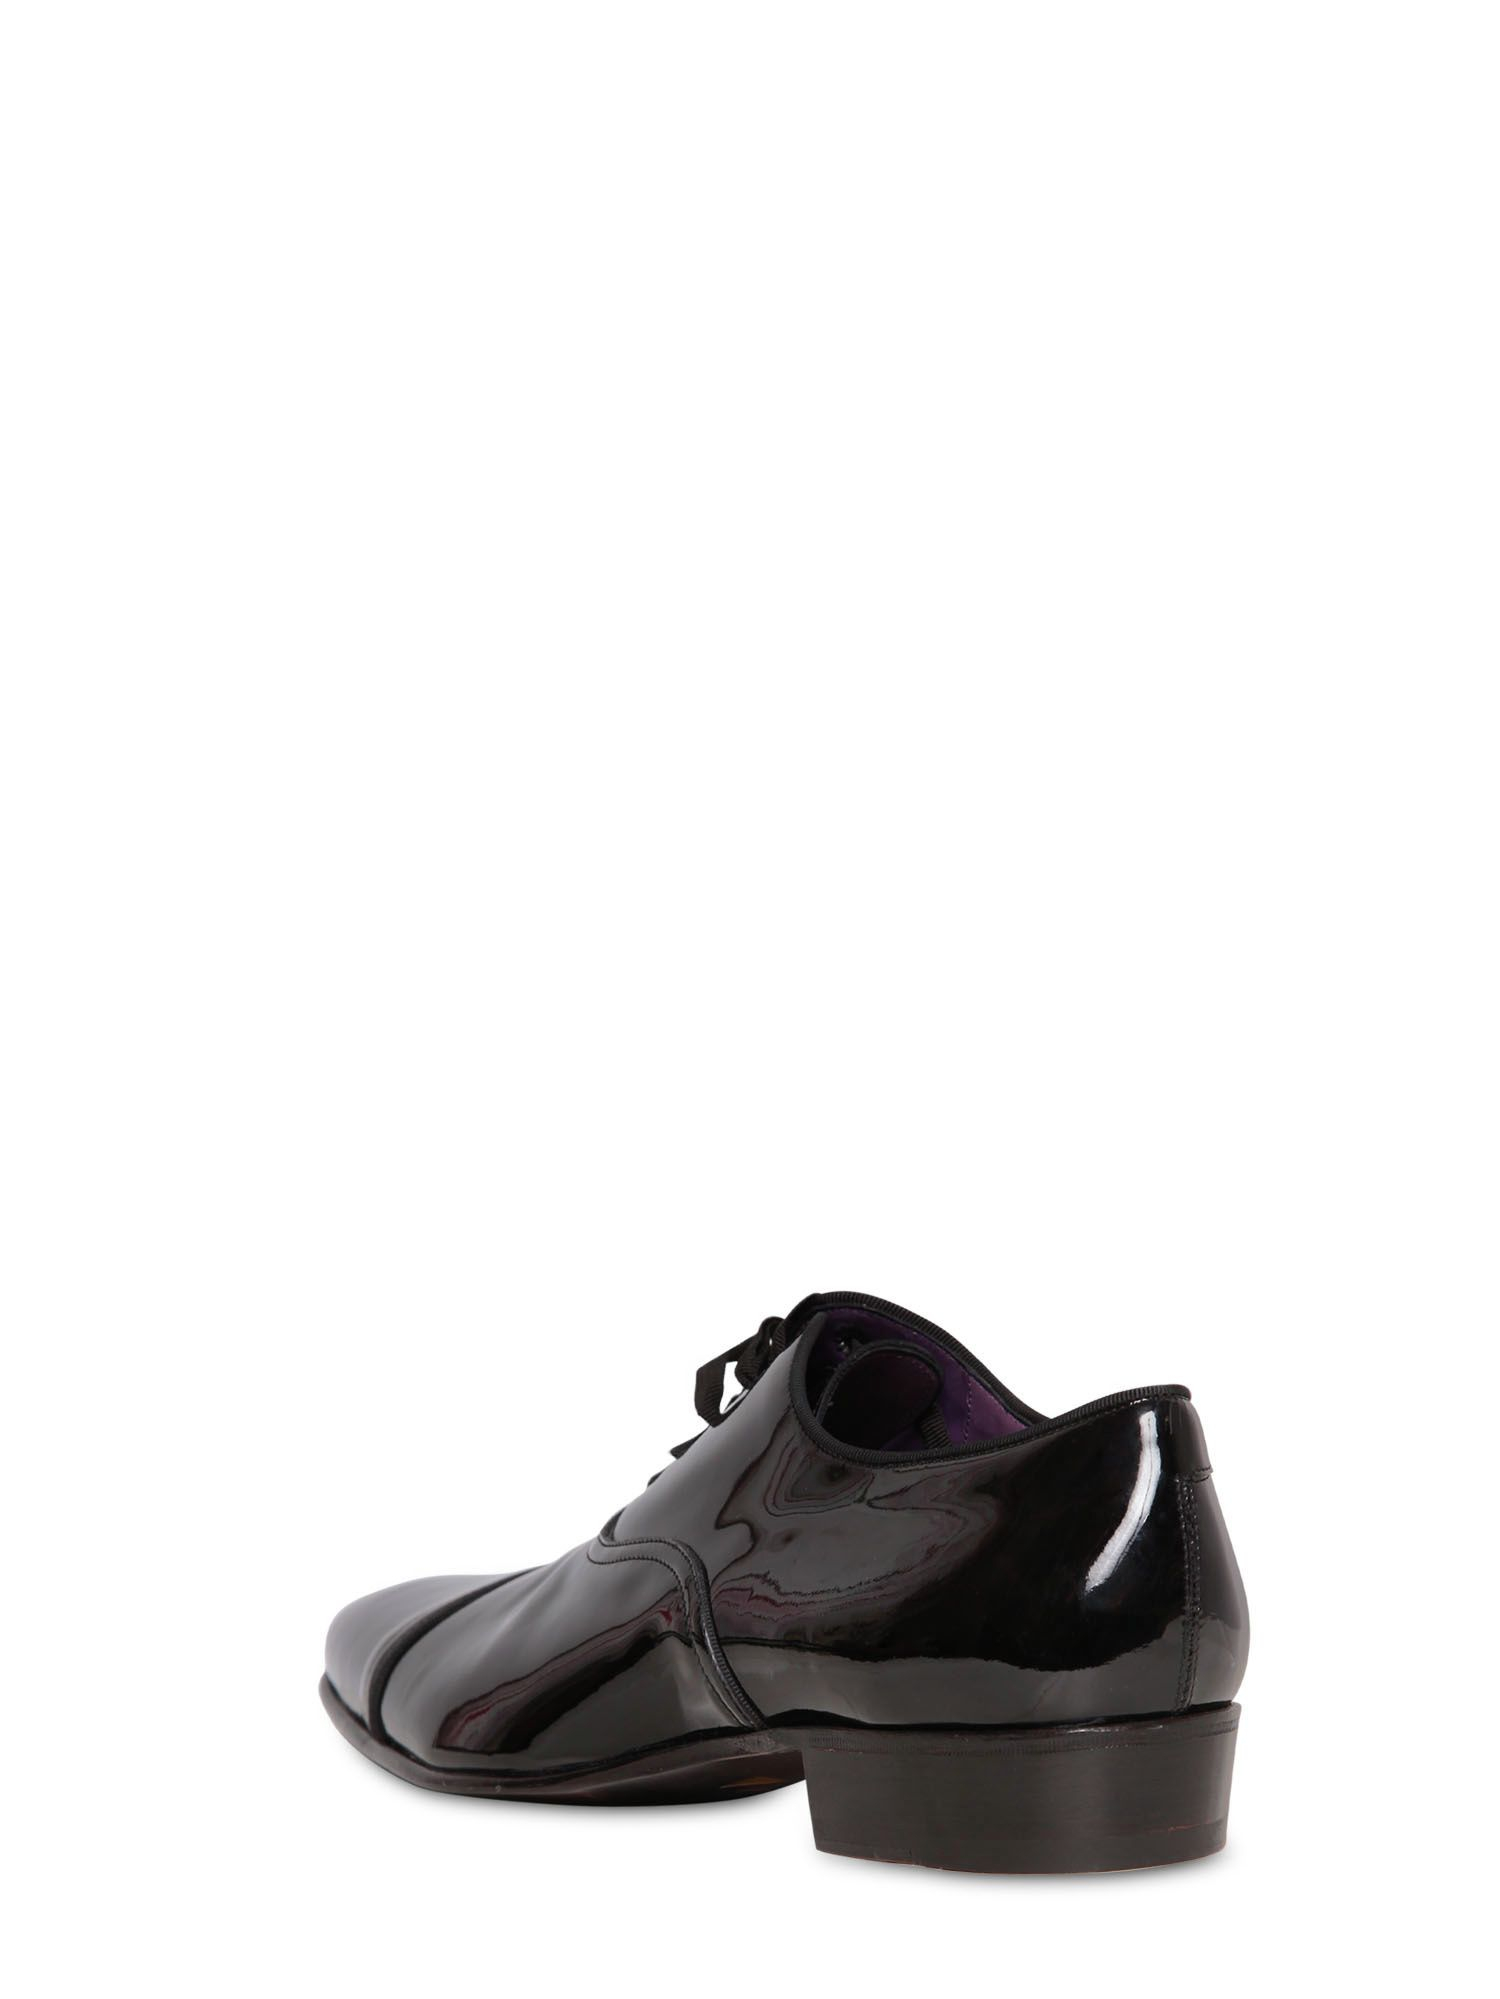 FOOTWEAR - Lace-up shoes Max Verre 4dnI96F